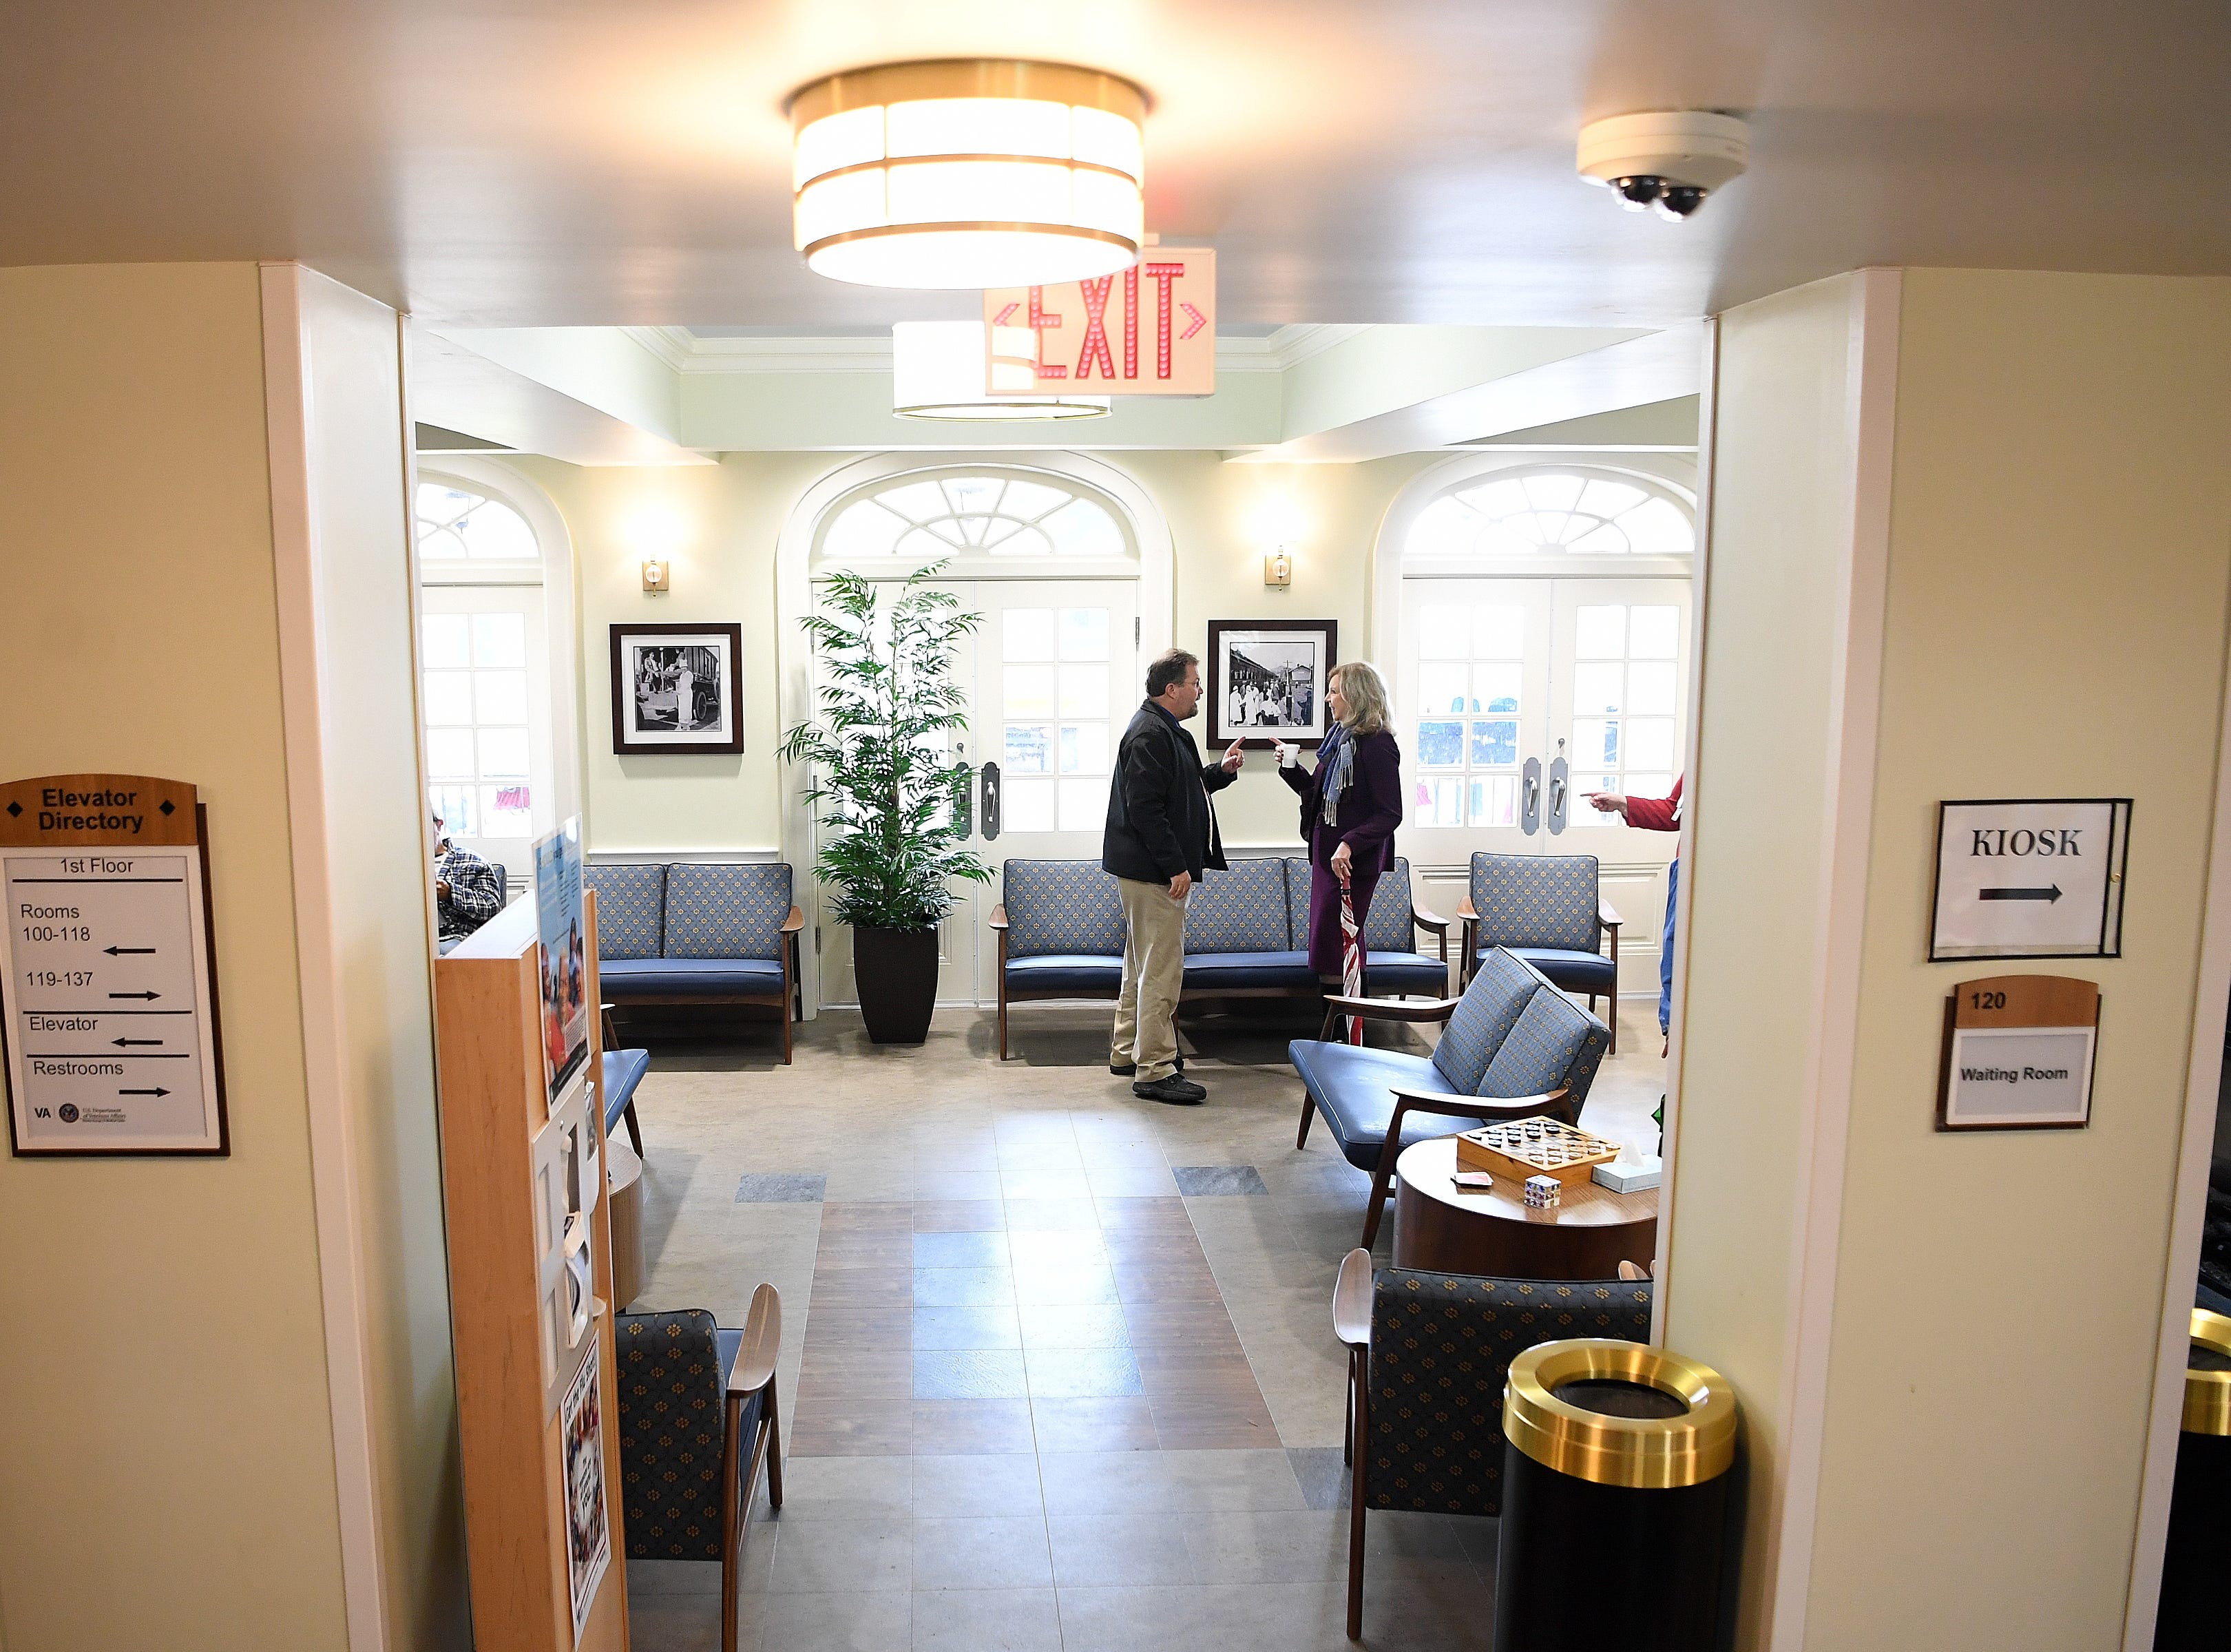 Visitors tour the Veterans Hope and Recovery Center on the campus of the Charles George VA Medical Center following a ribbon cutting ceremony on Oct. 26, 2018. The building was originally opened as a dormitory for nurses in the 1930s and was eventually condemned before being remodeled and reopened officially on Friday.